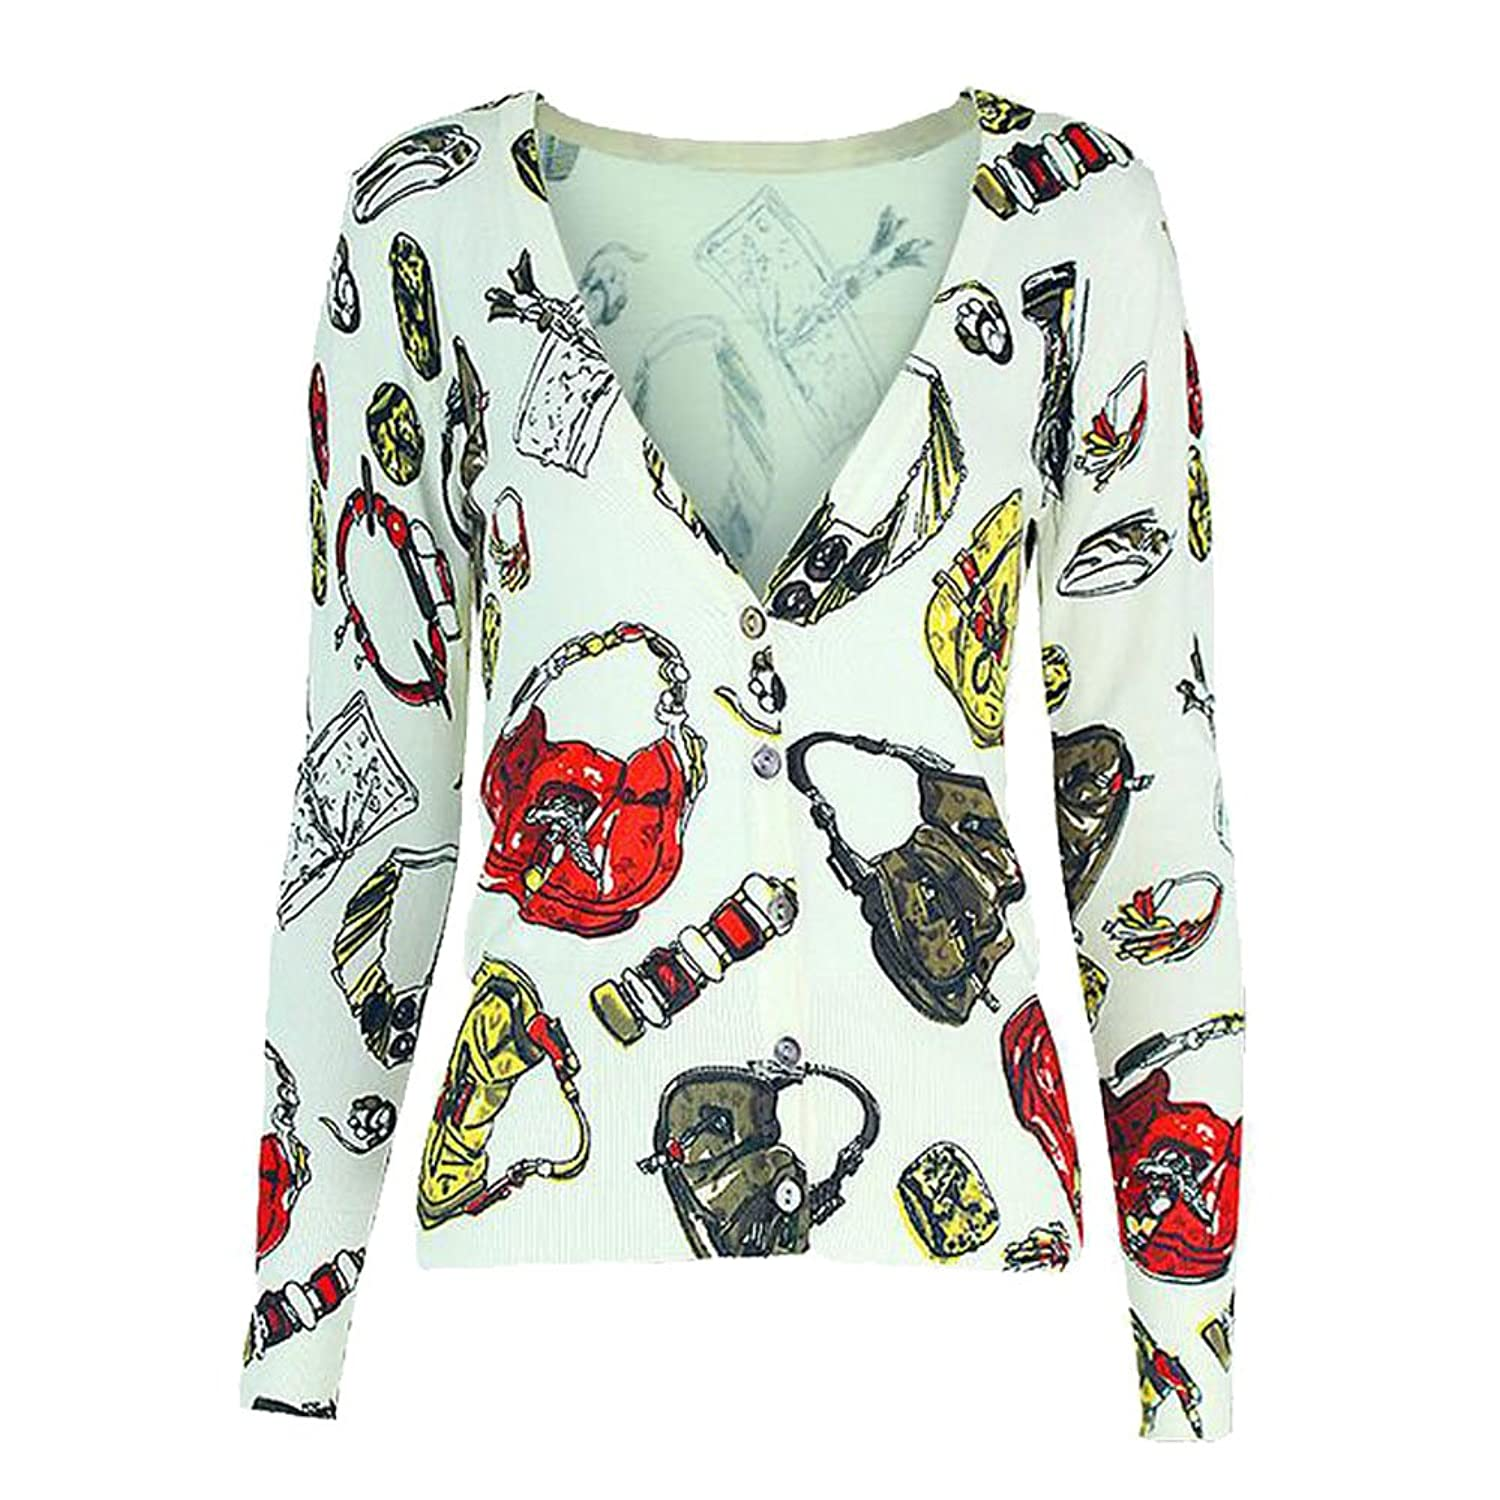 Women's multi-colour artical printing V-neck cardigan sweater